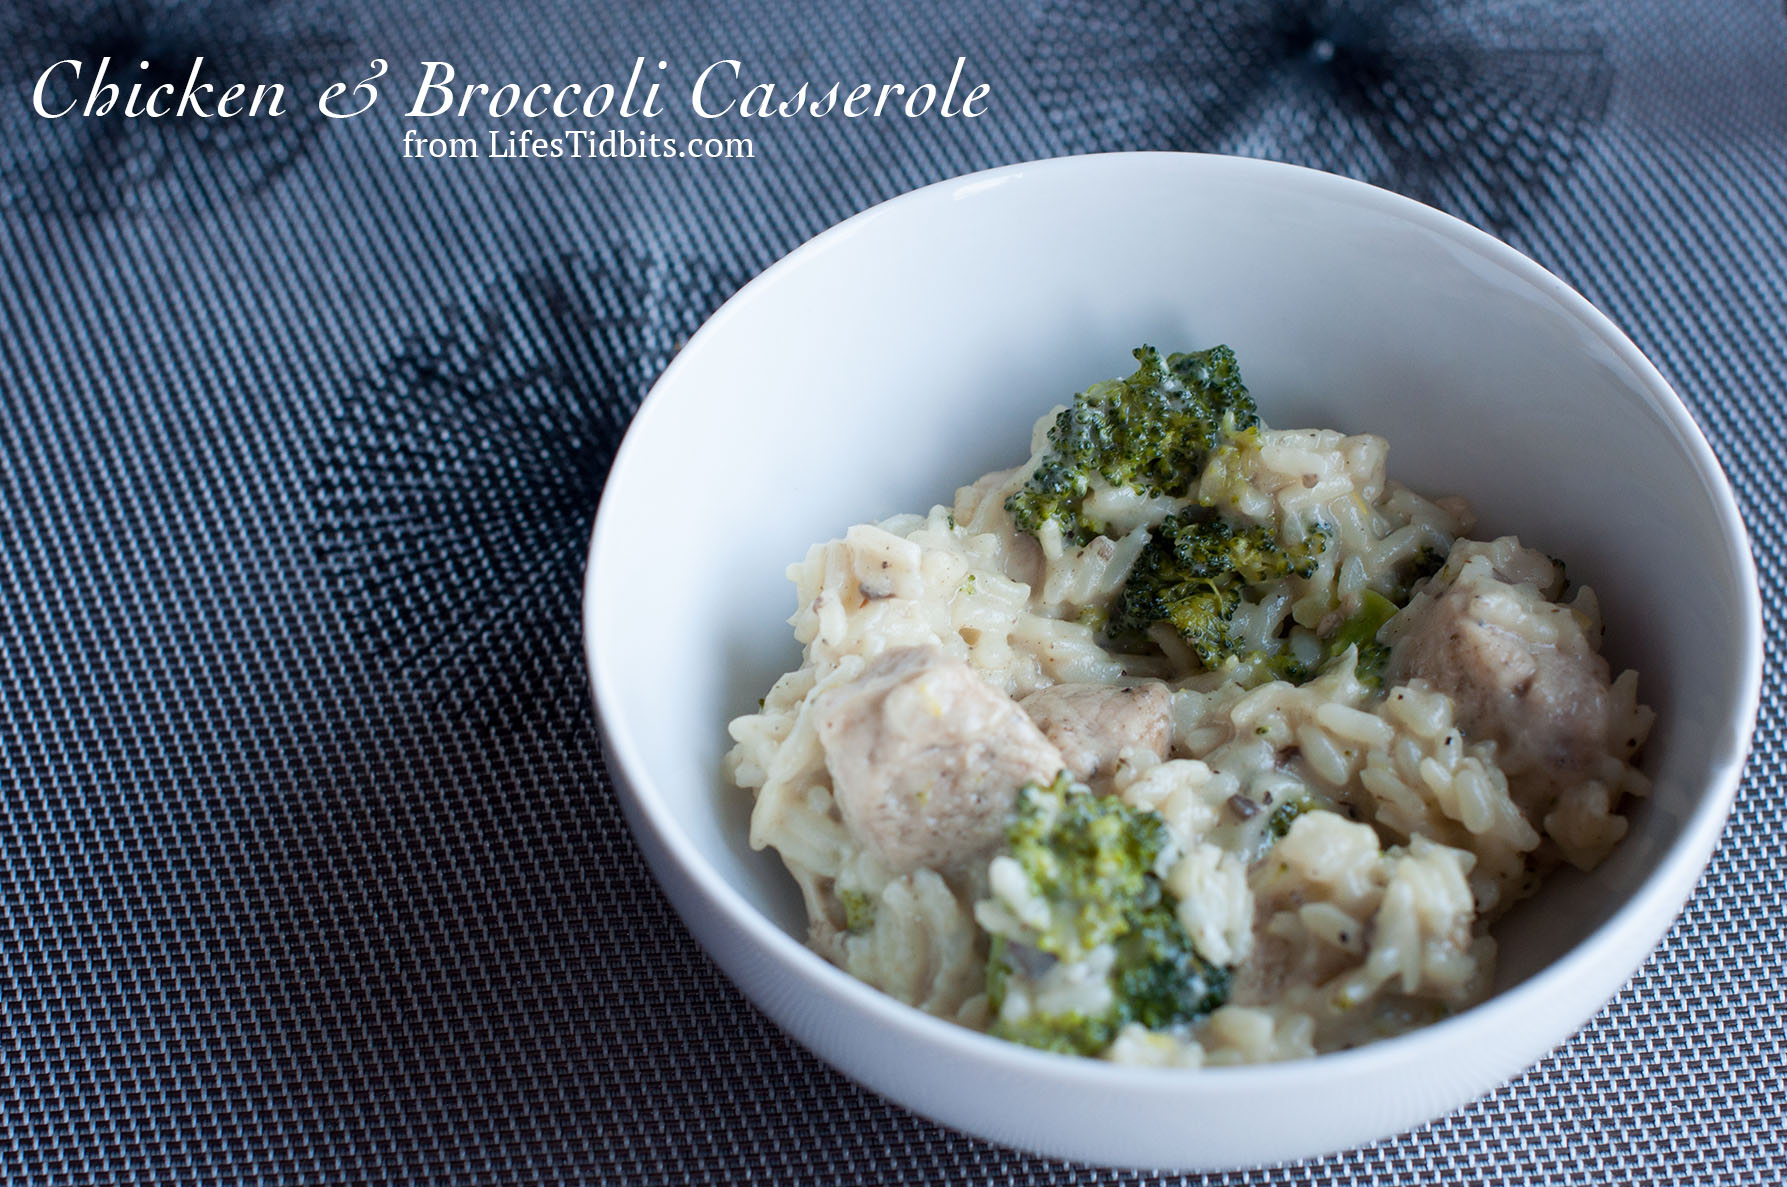 Chicken & Broccoli Casserole dinner recipe | Life's Tidbits